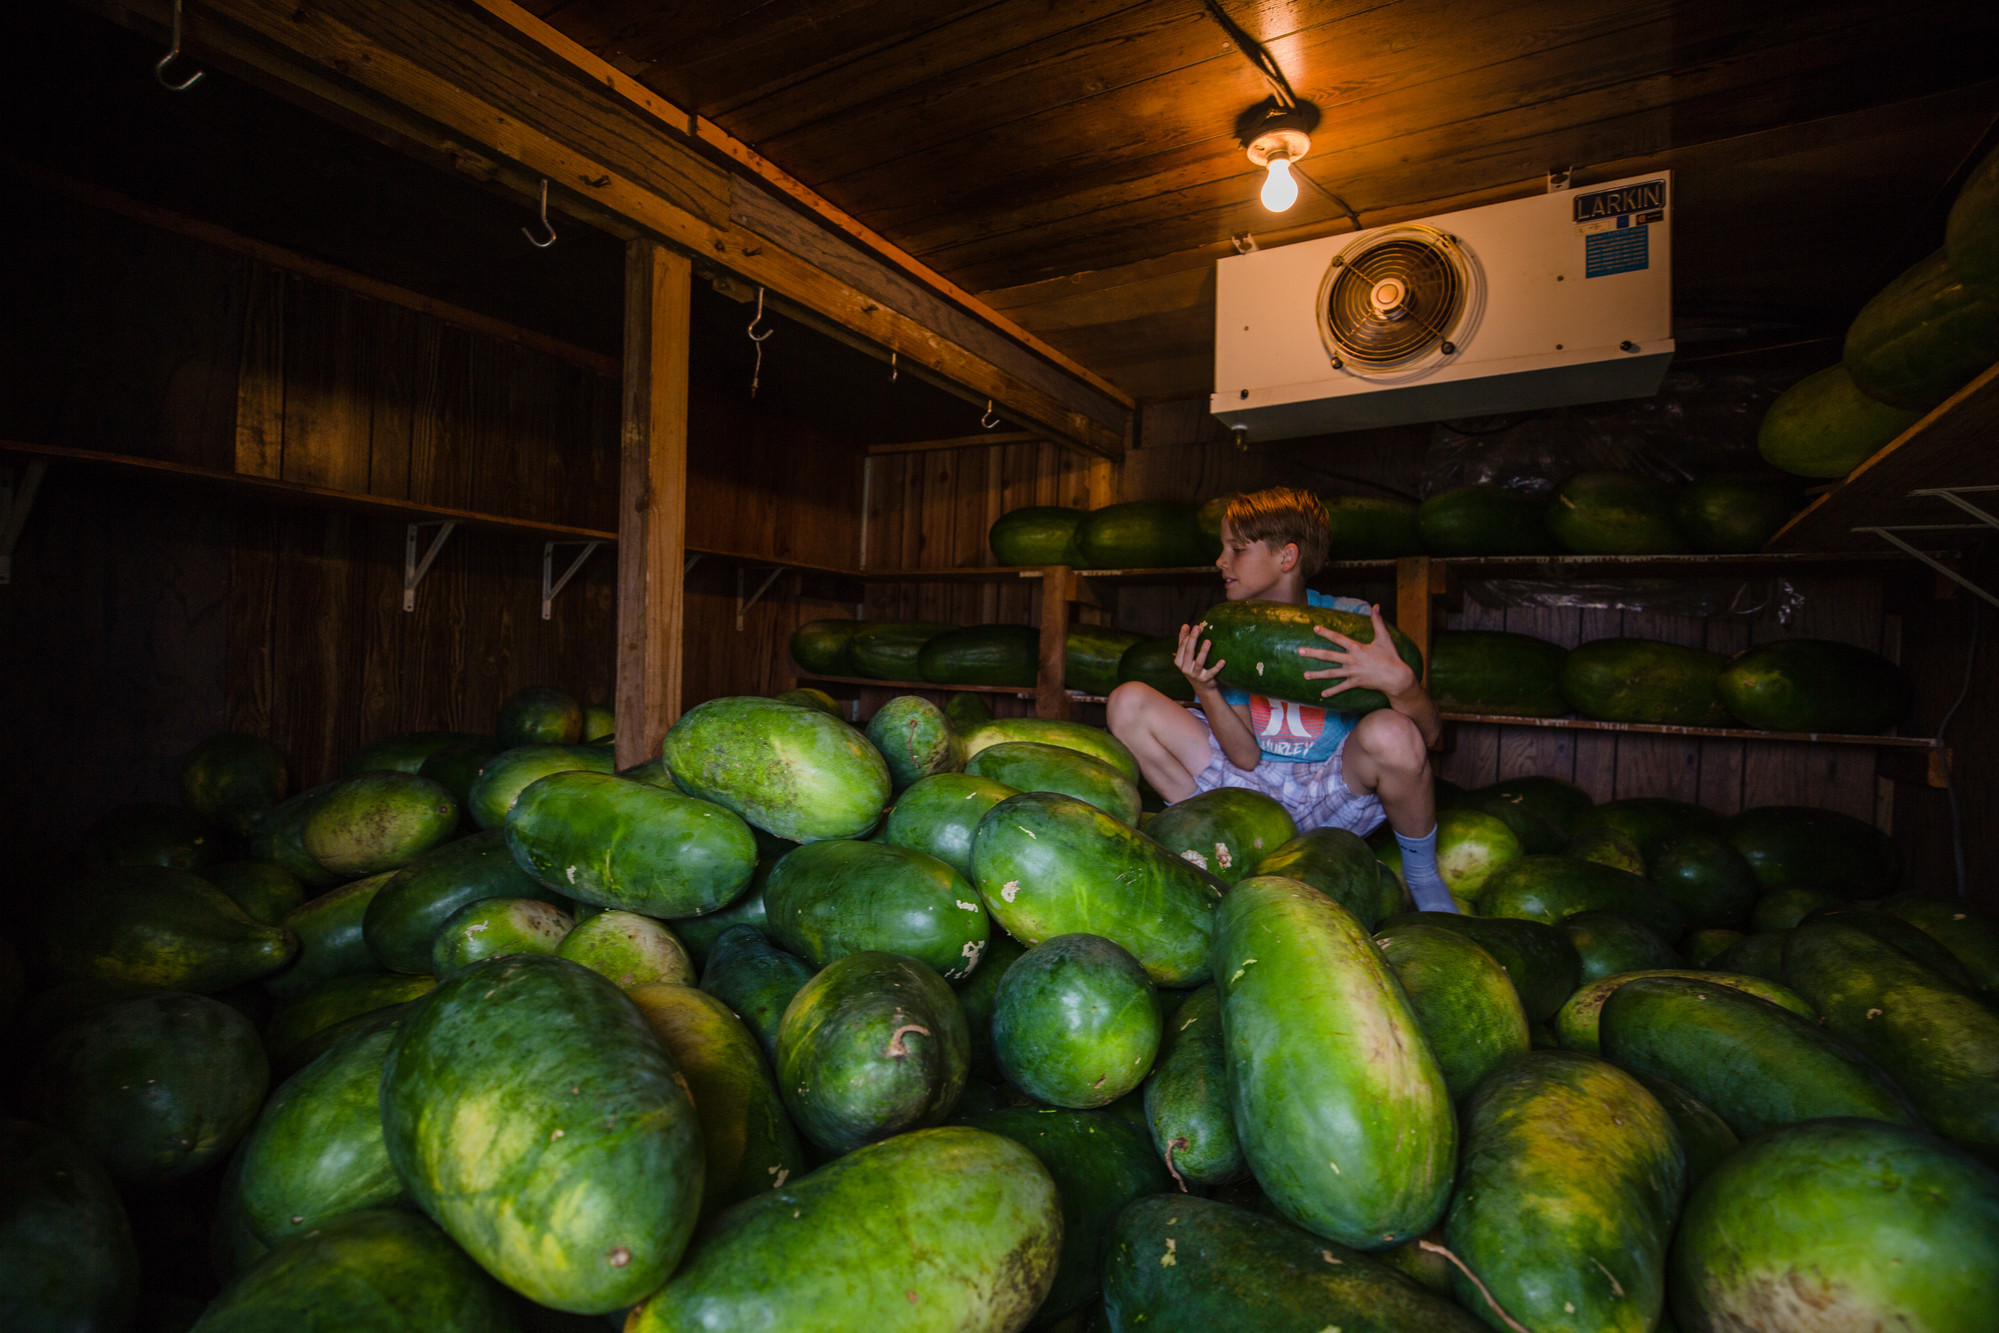 Danny Bradford, Nat Bradford's son, moves some watermelons around in their refrigerated storage unit ahead of Hurricane Florence on Friday, Sept. 14.